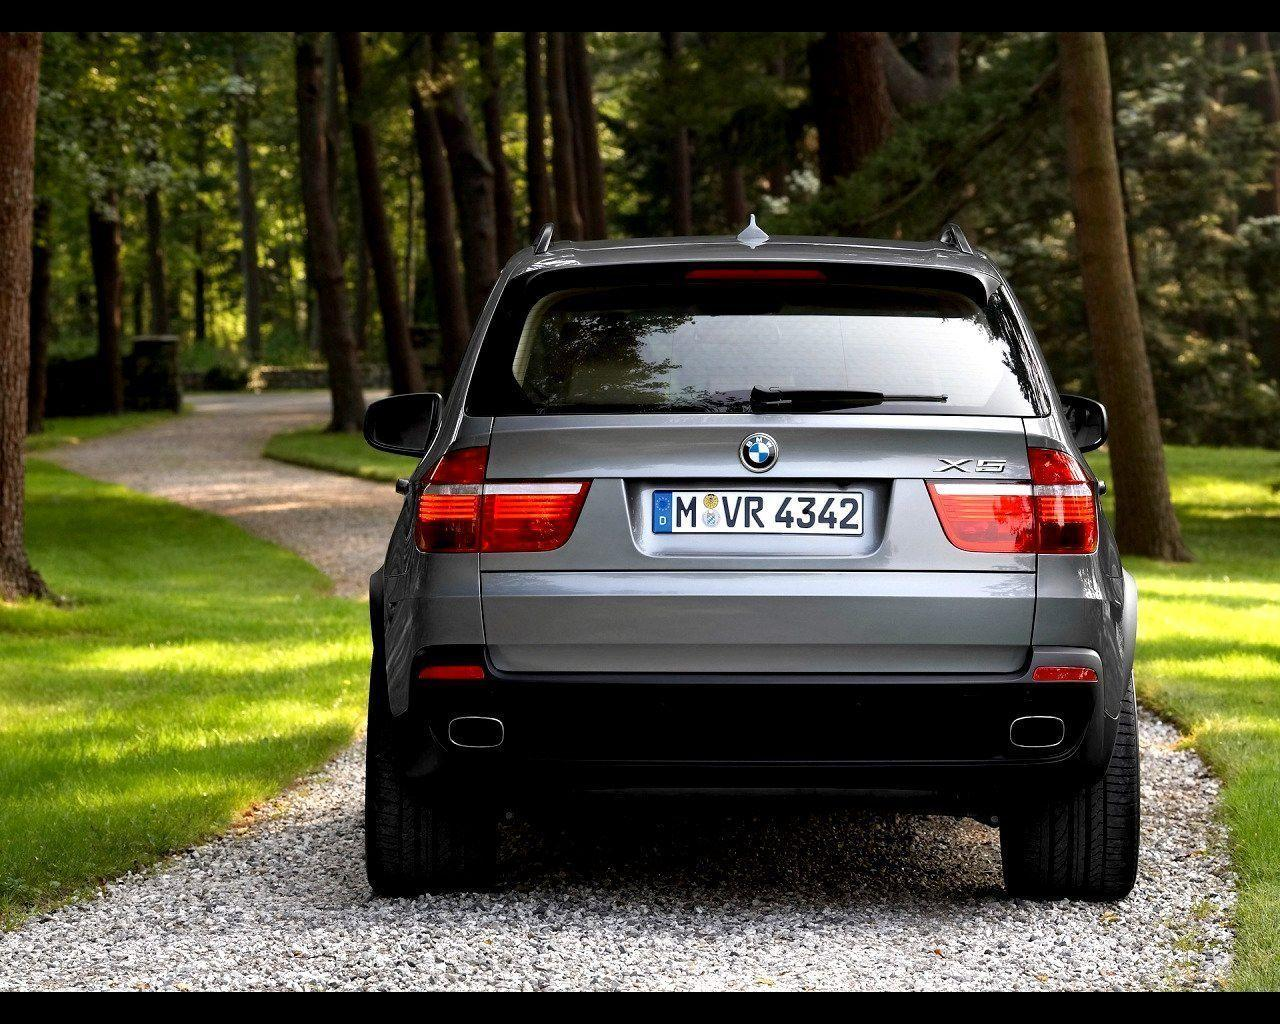 2007 BMW X5 Wallpaper 07 - 1280x1024